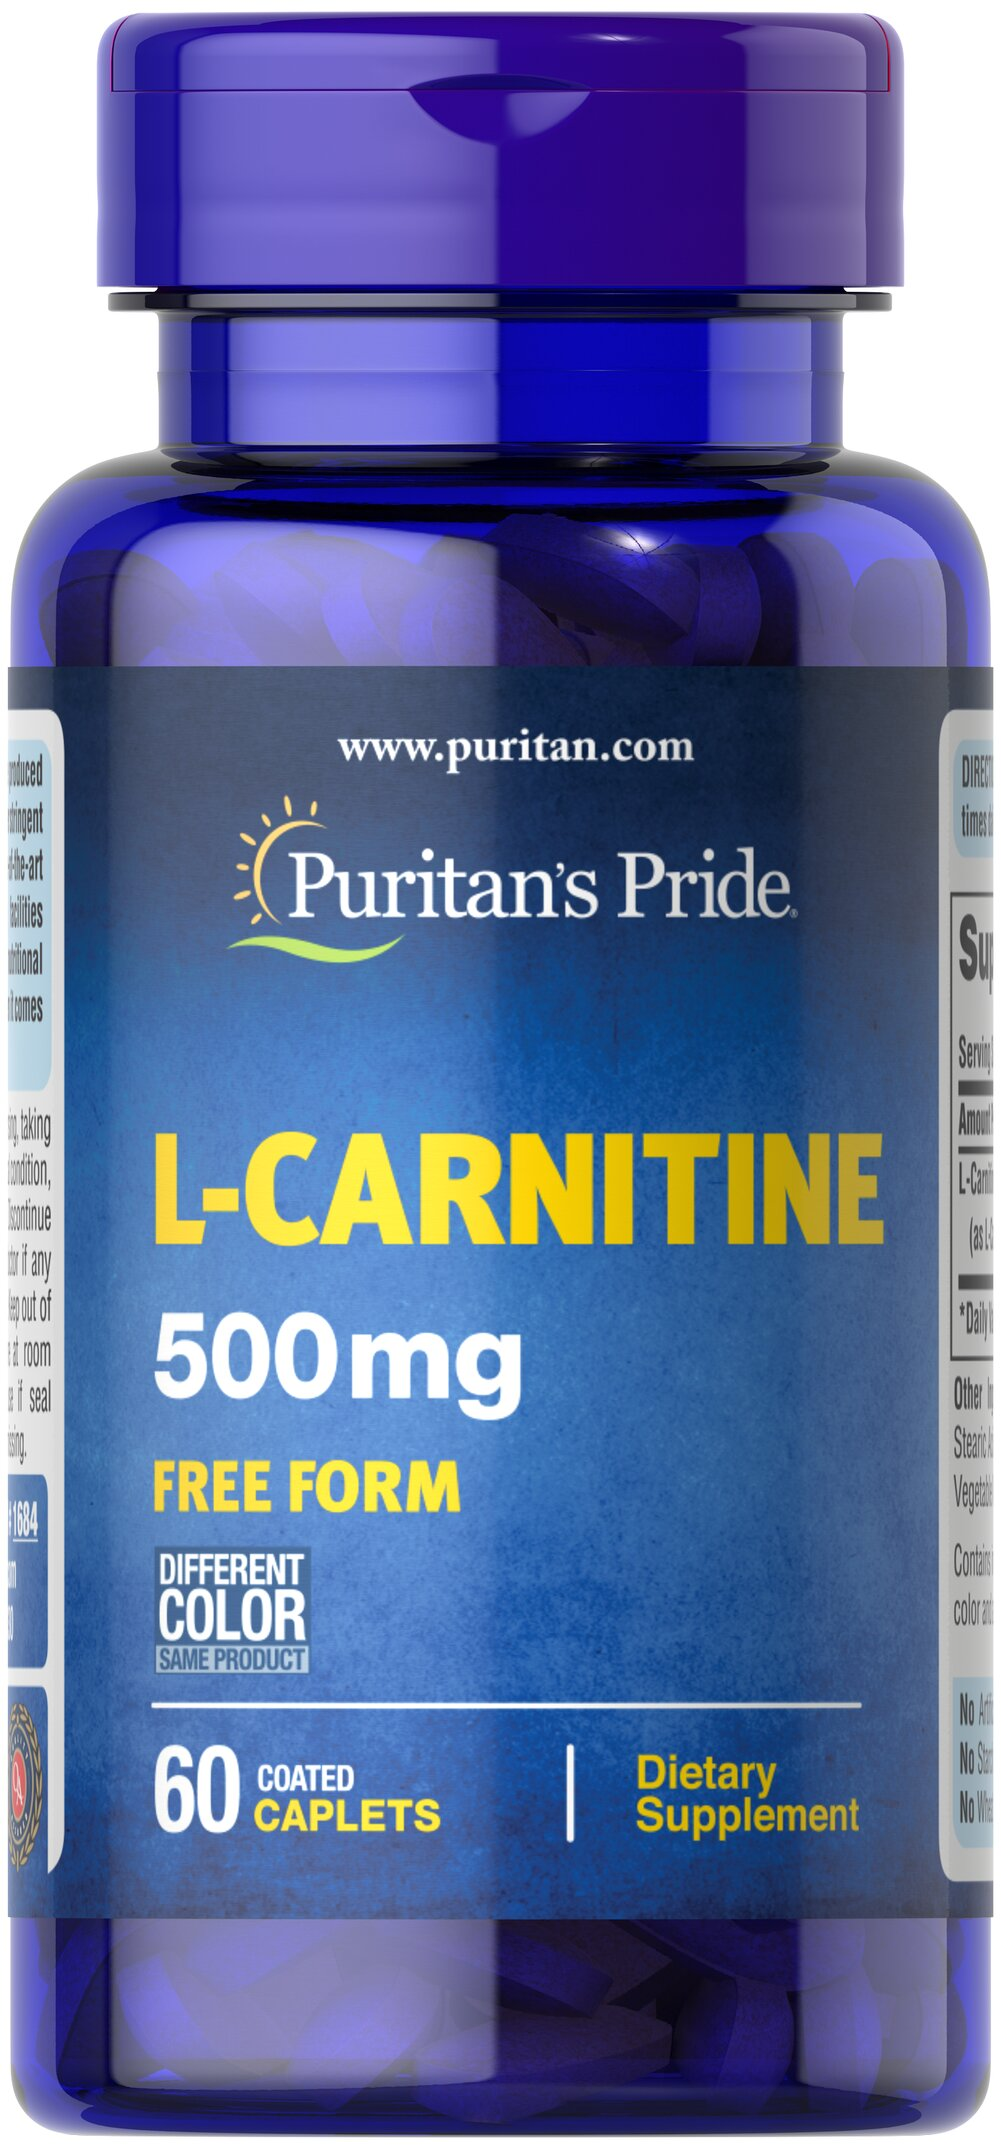 L-Carnitine 500 mg  60 Caplets 500 mg $13.49